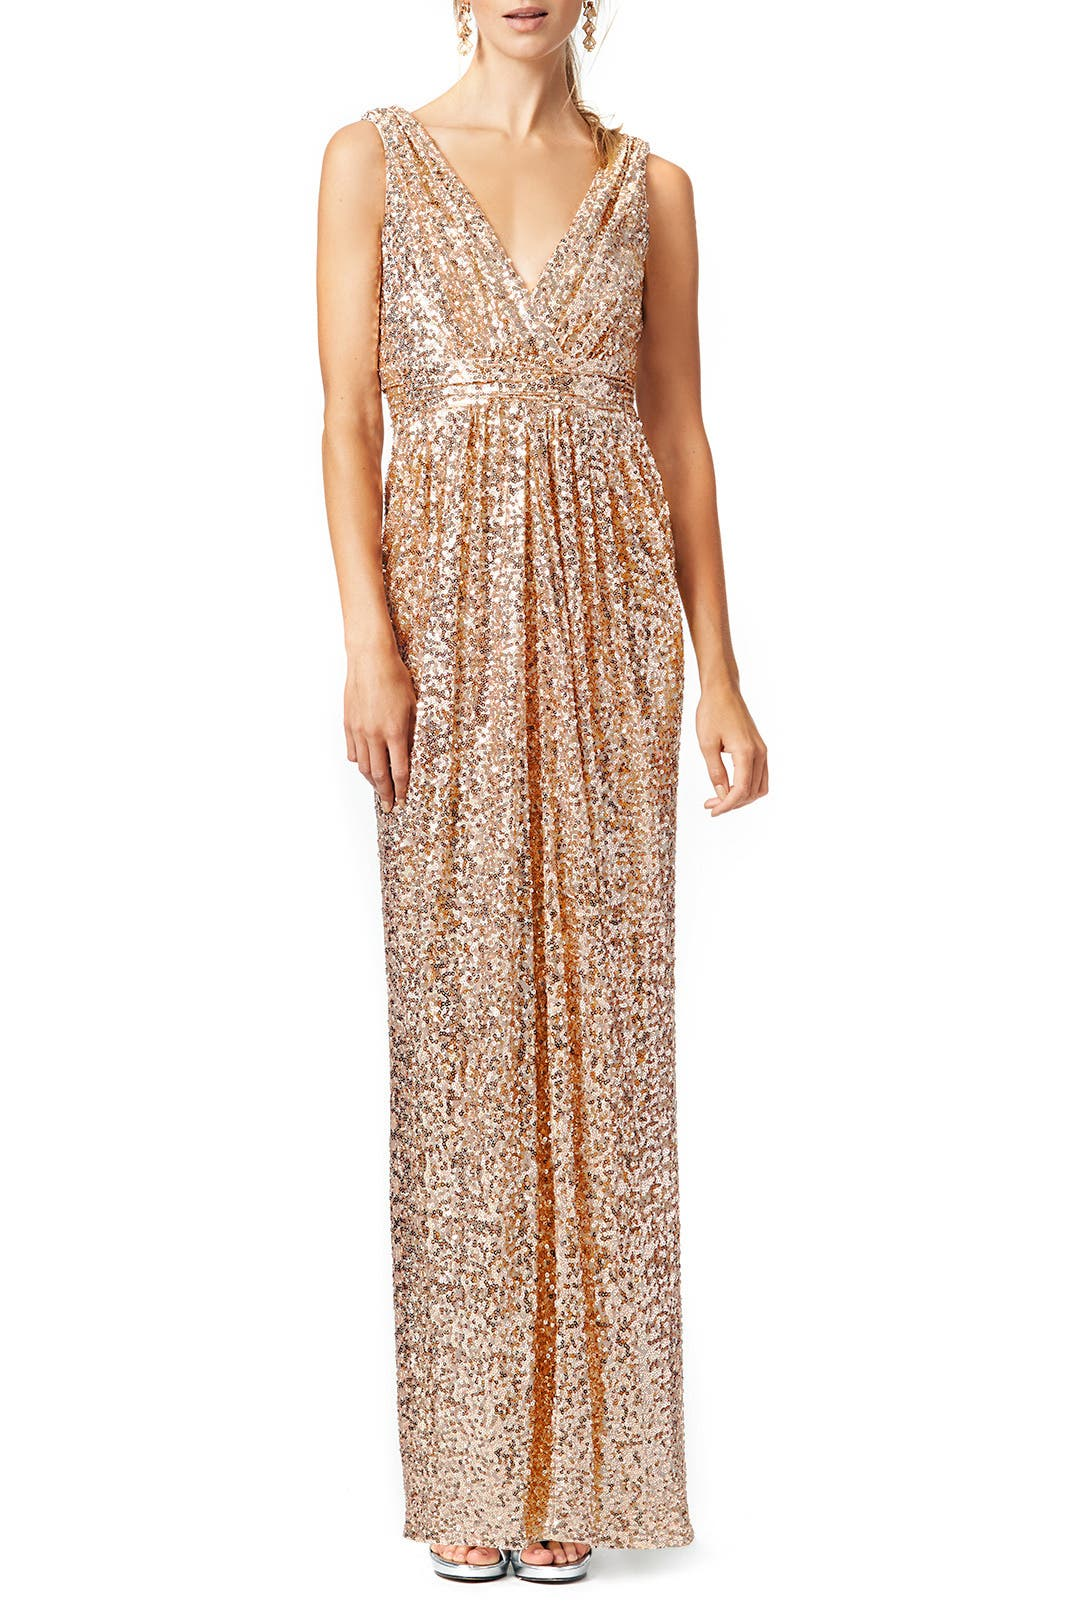 Glitz Gown by Badgley Mischka for $90 | Rent the Runway